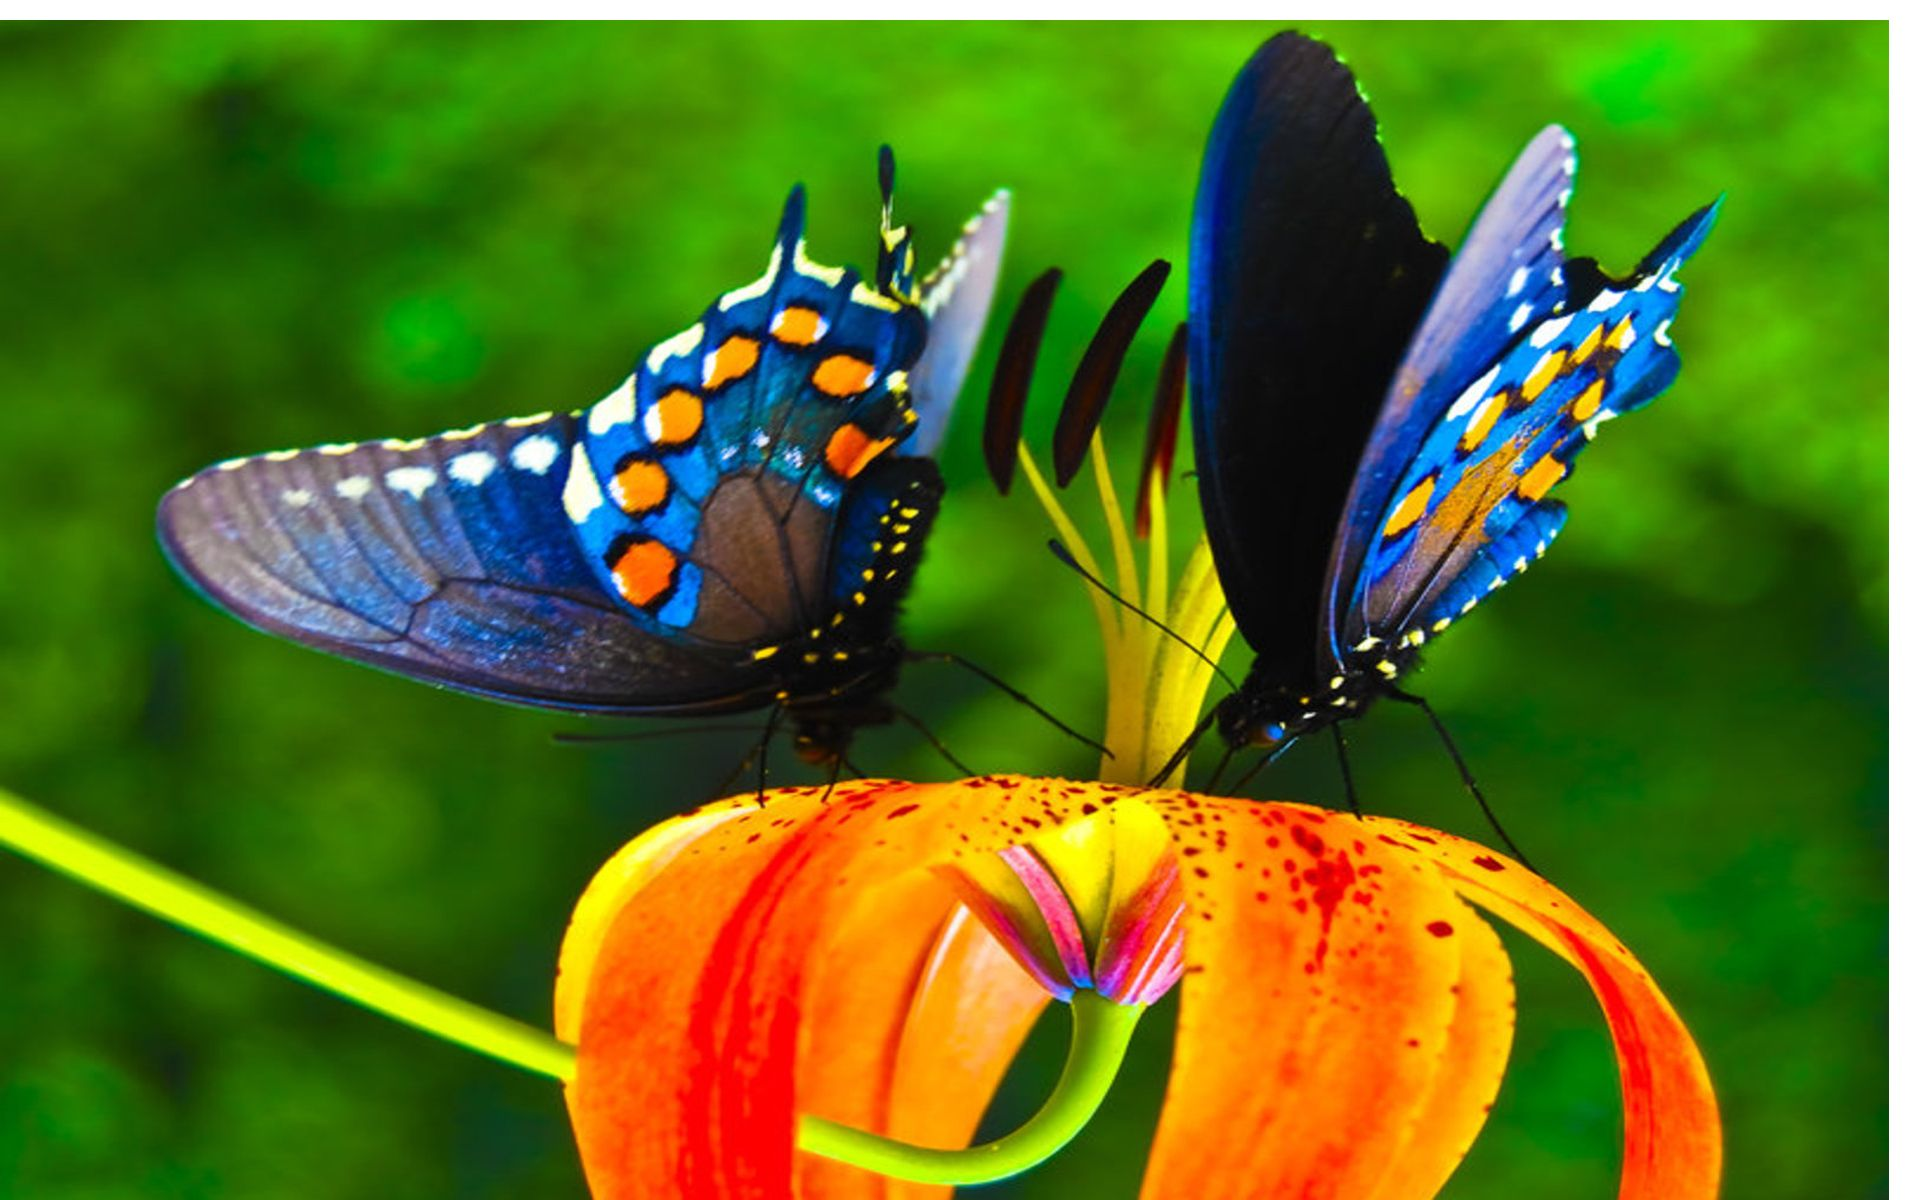 Colorful Butterfly Hd Wallpaper Jpg 1920 1200 Most Beautiful Butterfly Beautiful Butterflies Butterfly Wallpaper